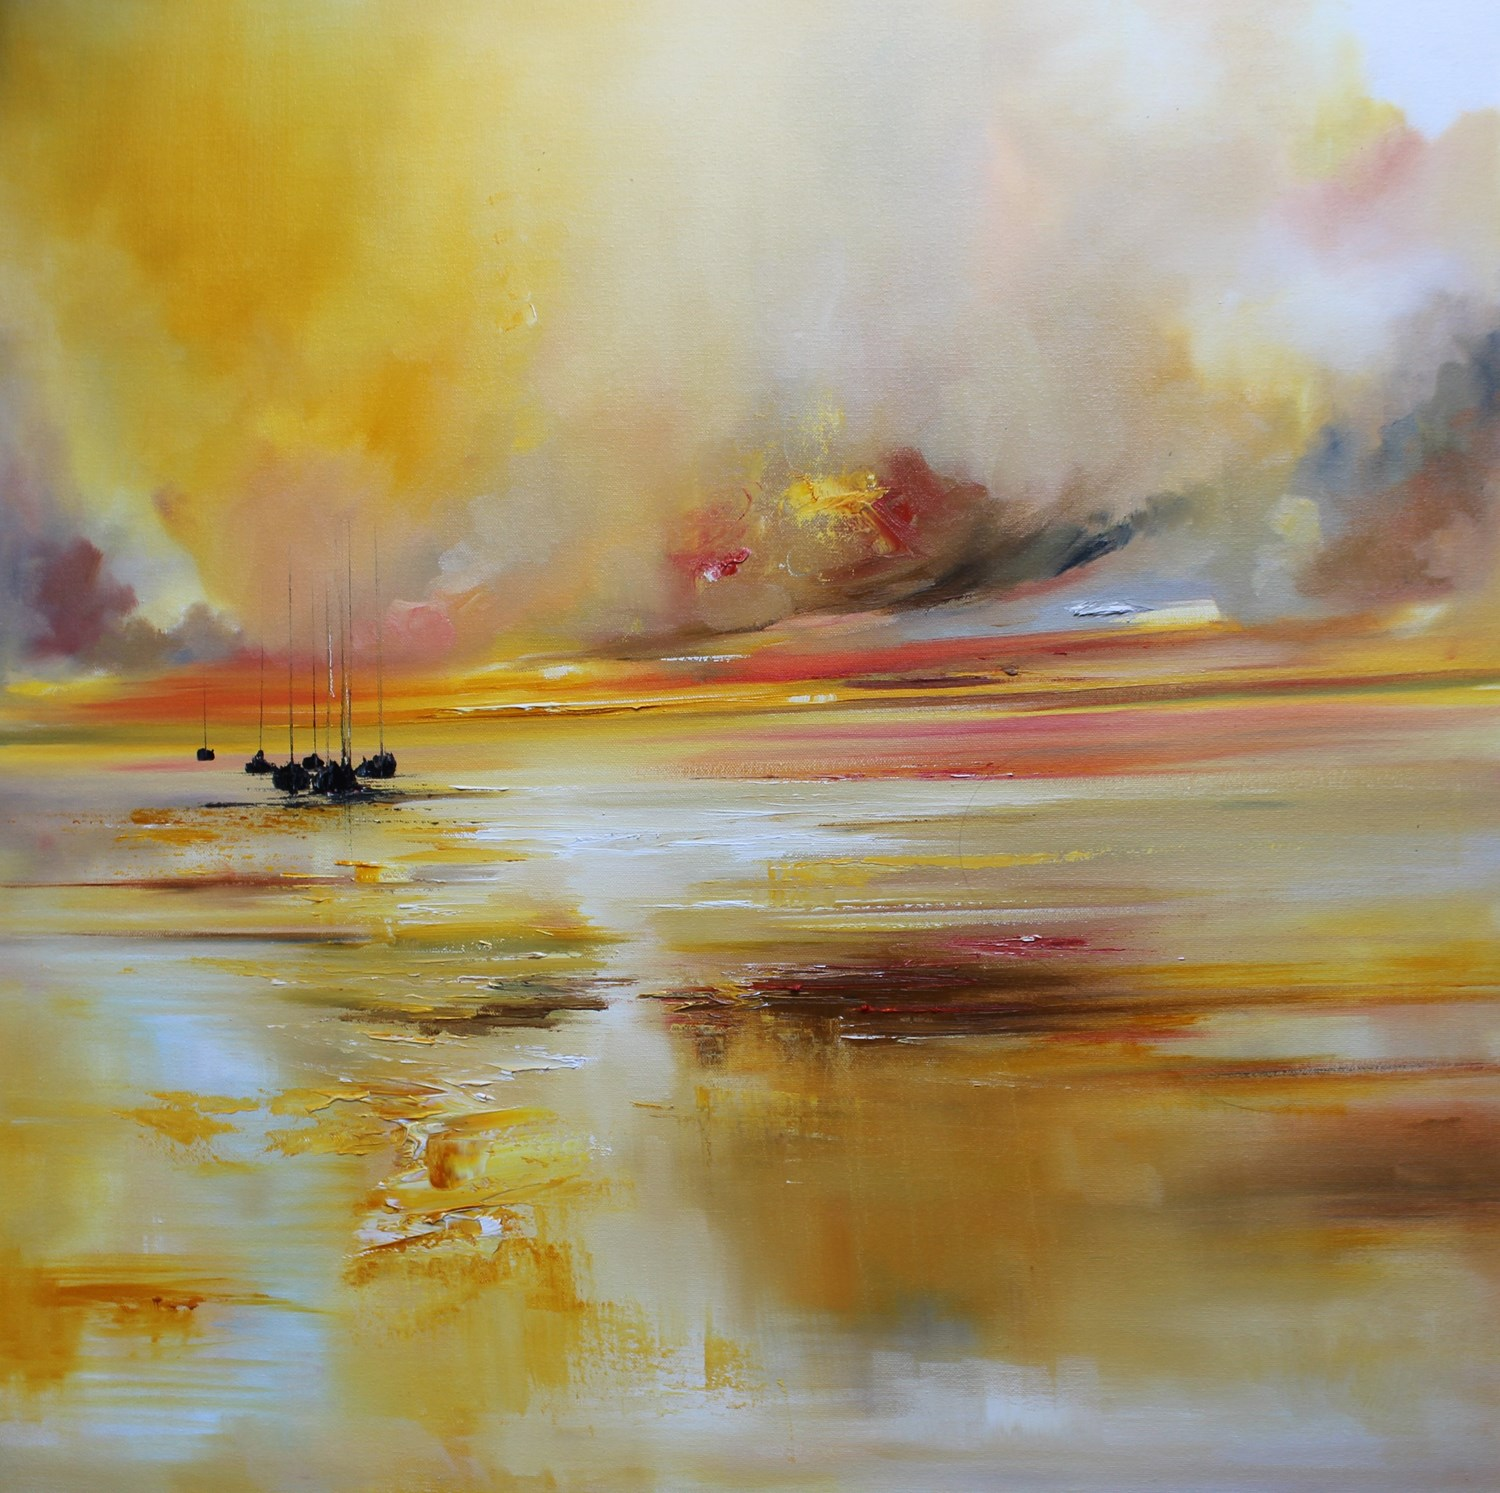 'A Burst of Gold Light' by artist Rosanne Barr